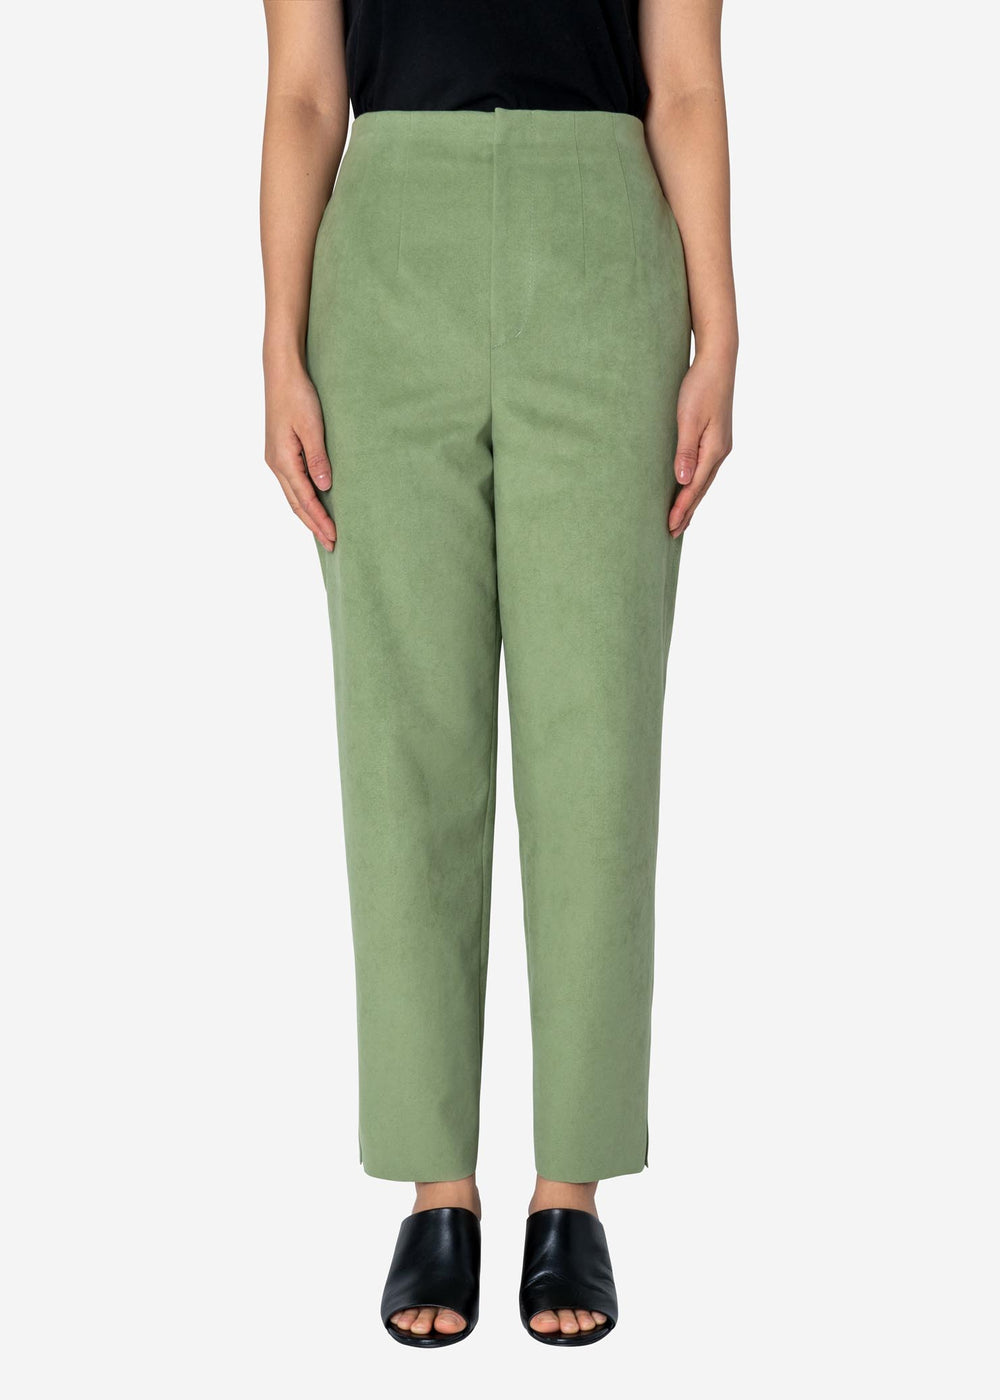 https://greed.co.jp/collections/greed-internartional-pants/products/soft-suede-pants-in-light-green